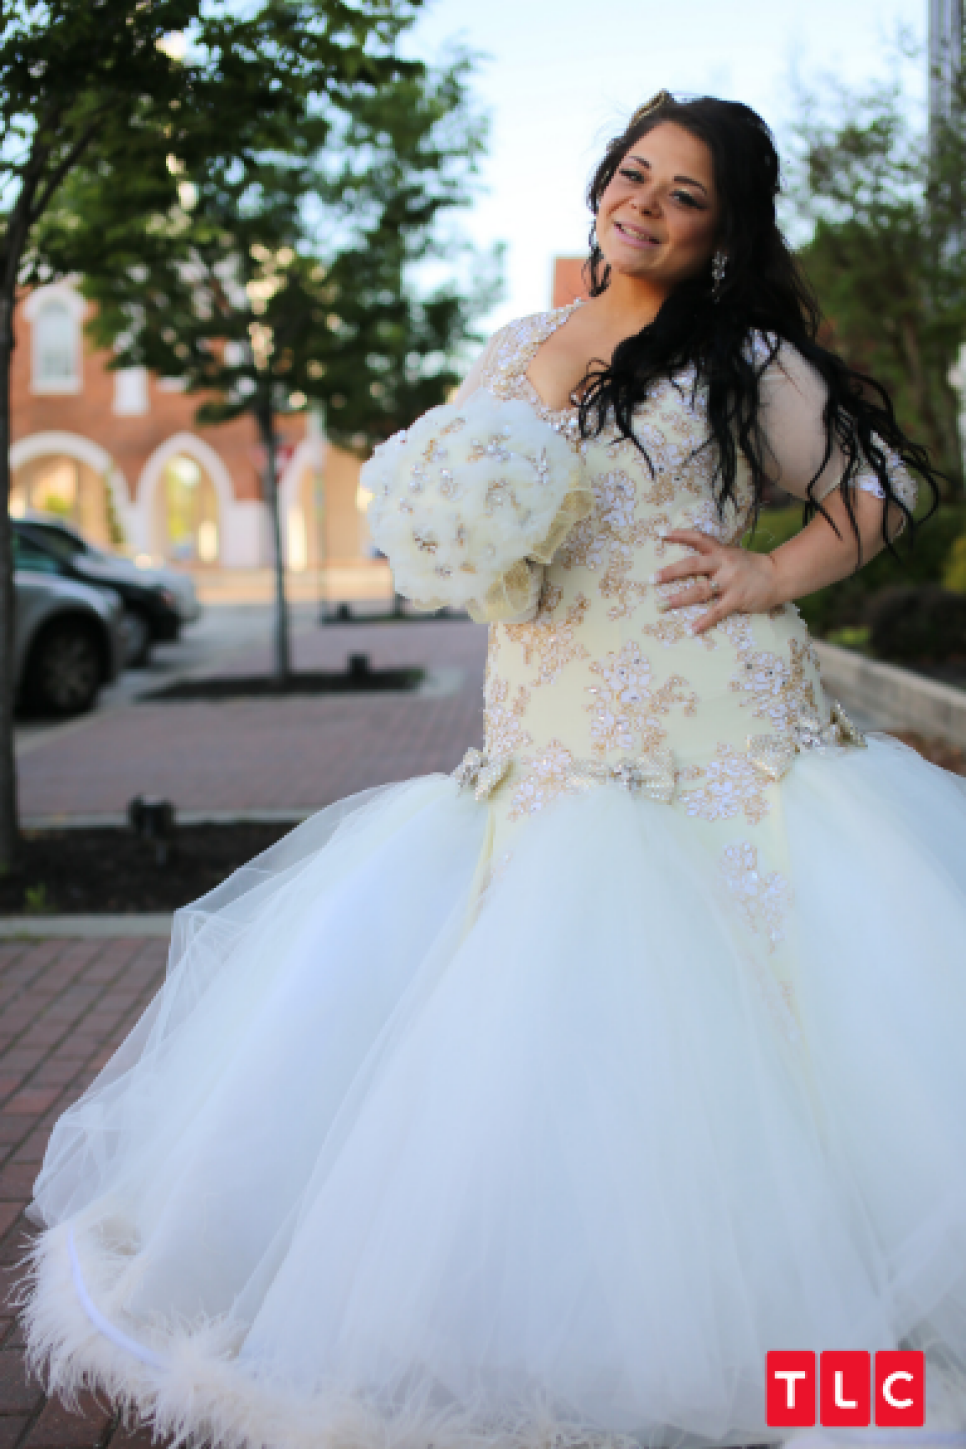 Gypsy Wedding Dresses.The Outrageous Gowns Of My Big Fat American Gypsy Wedding Inside